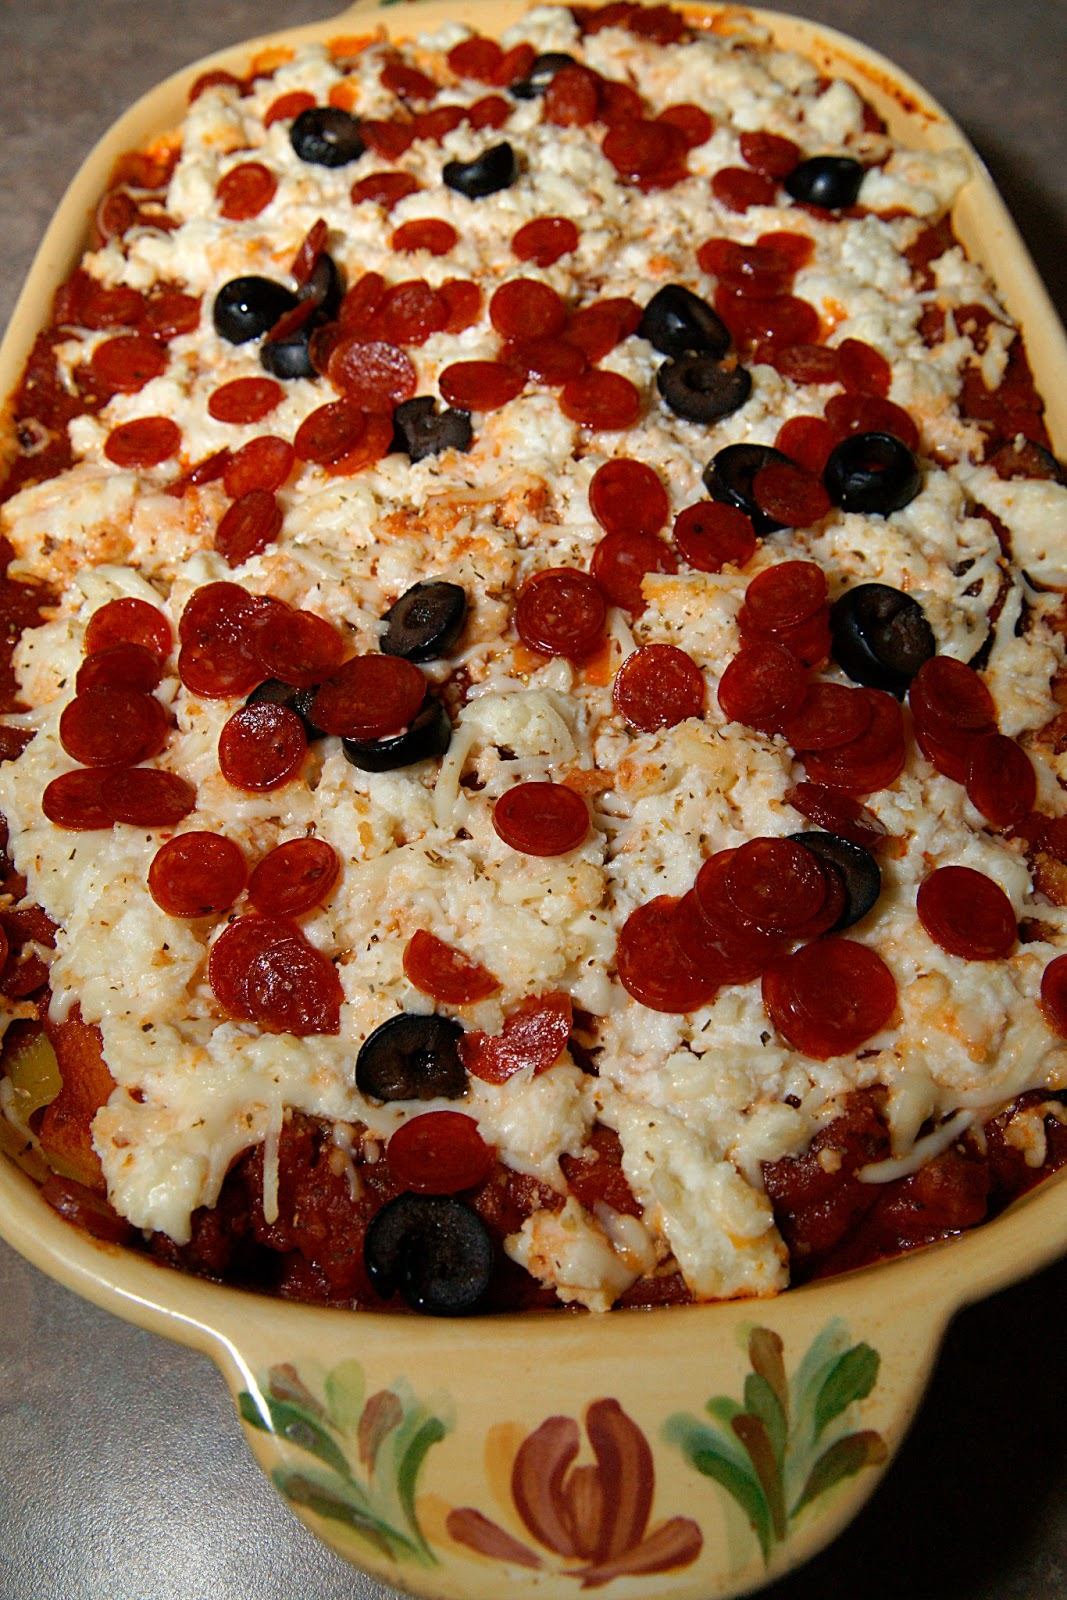 Savory Sweet and Satisfying: Pepperoni Pizza Casserole